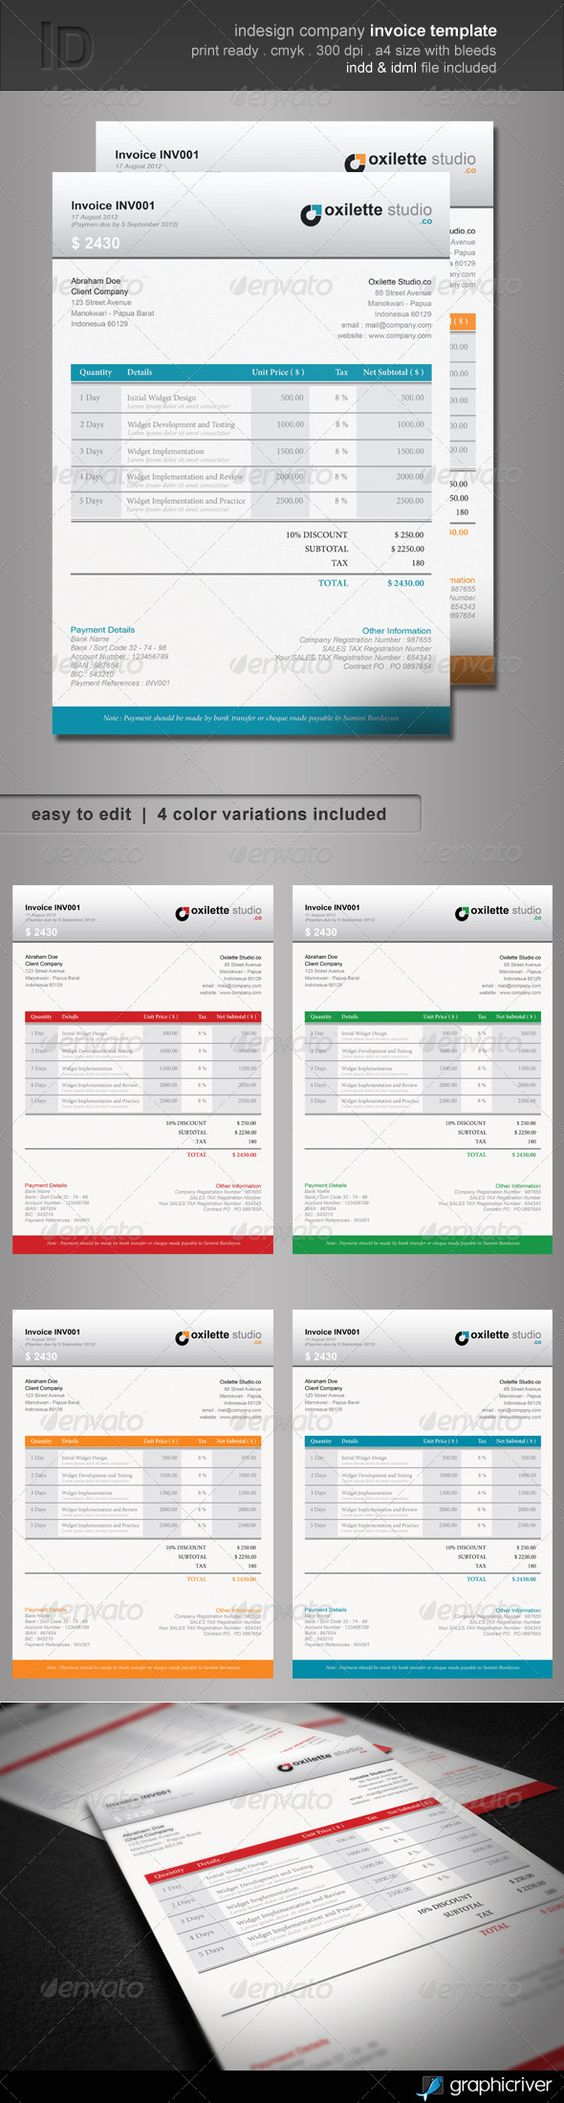 Indesign Company Invoice Template | Fonts, Colors and Wells